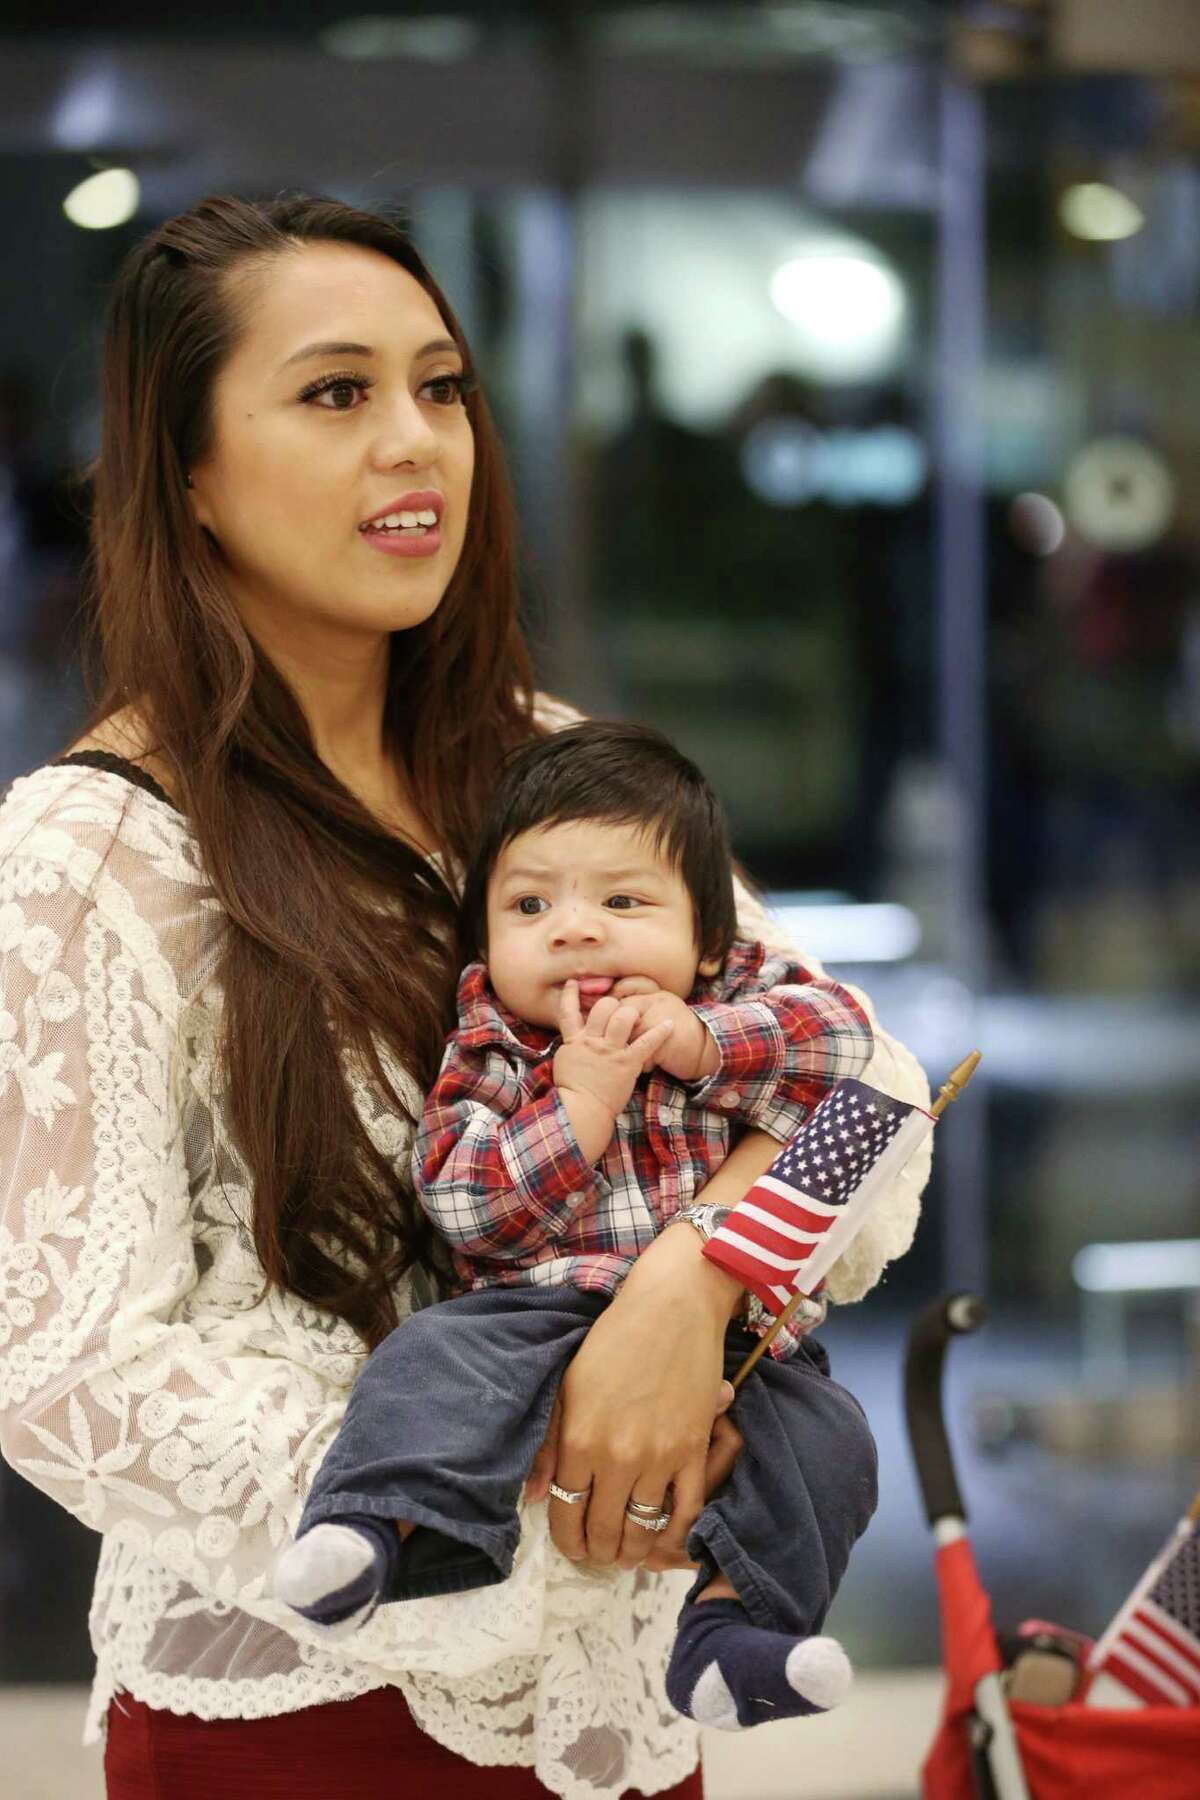 Roxanne Patlan waits with her son Raphael for her husband CJ at Bush IAH Airport Thursday, Dec. 24, 2015, in Houston. Patlan's husband is a Marine stationed in Okinawa, Japan, whose flight home was paid for by a GoFundMe campaign.